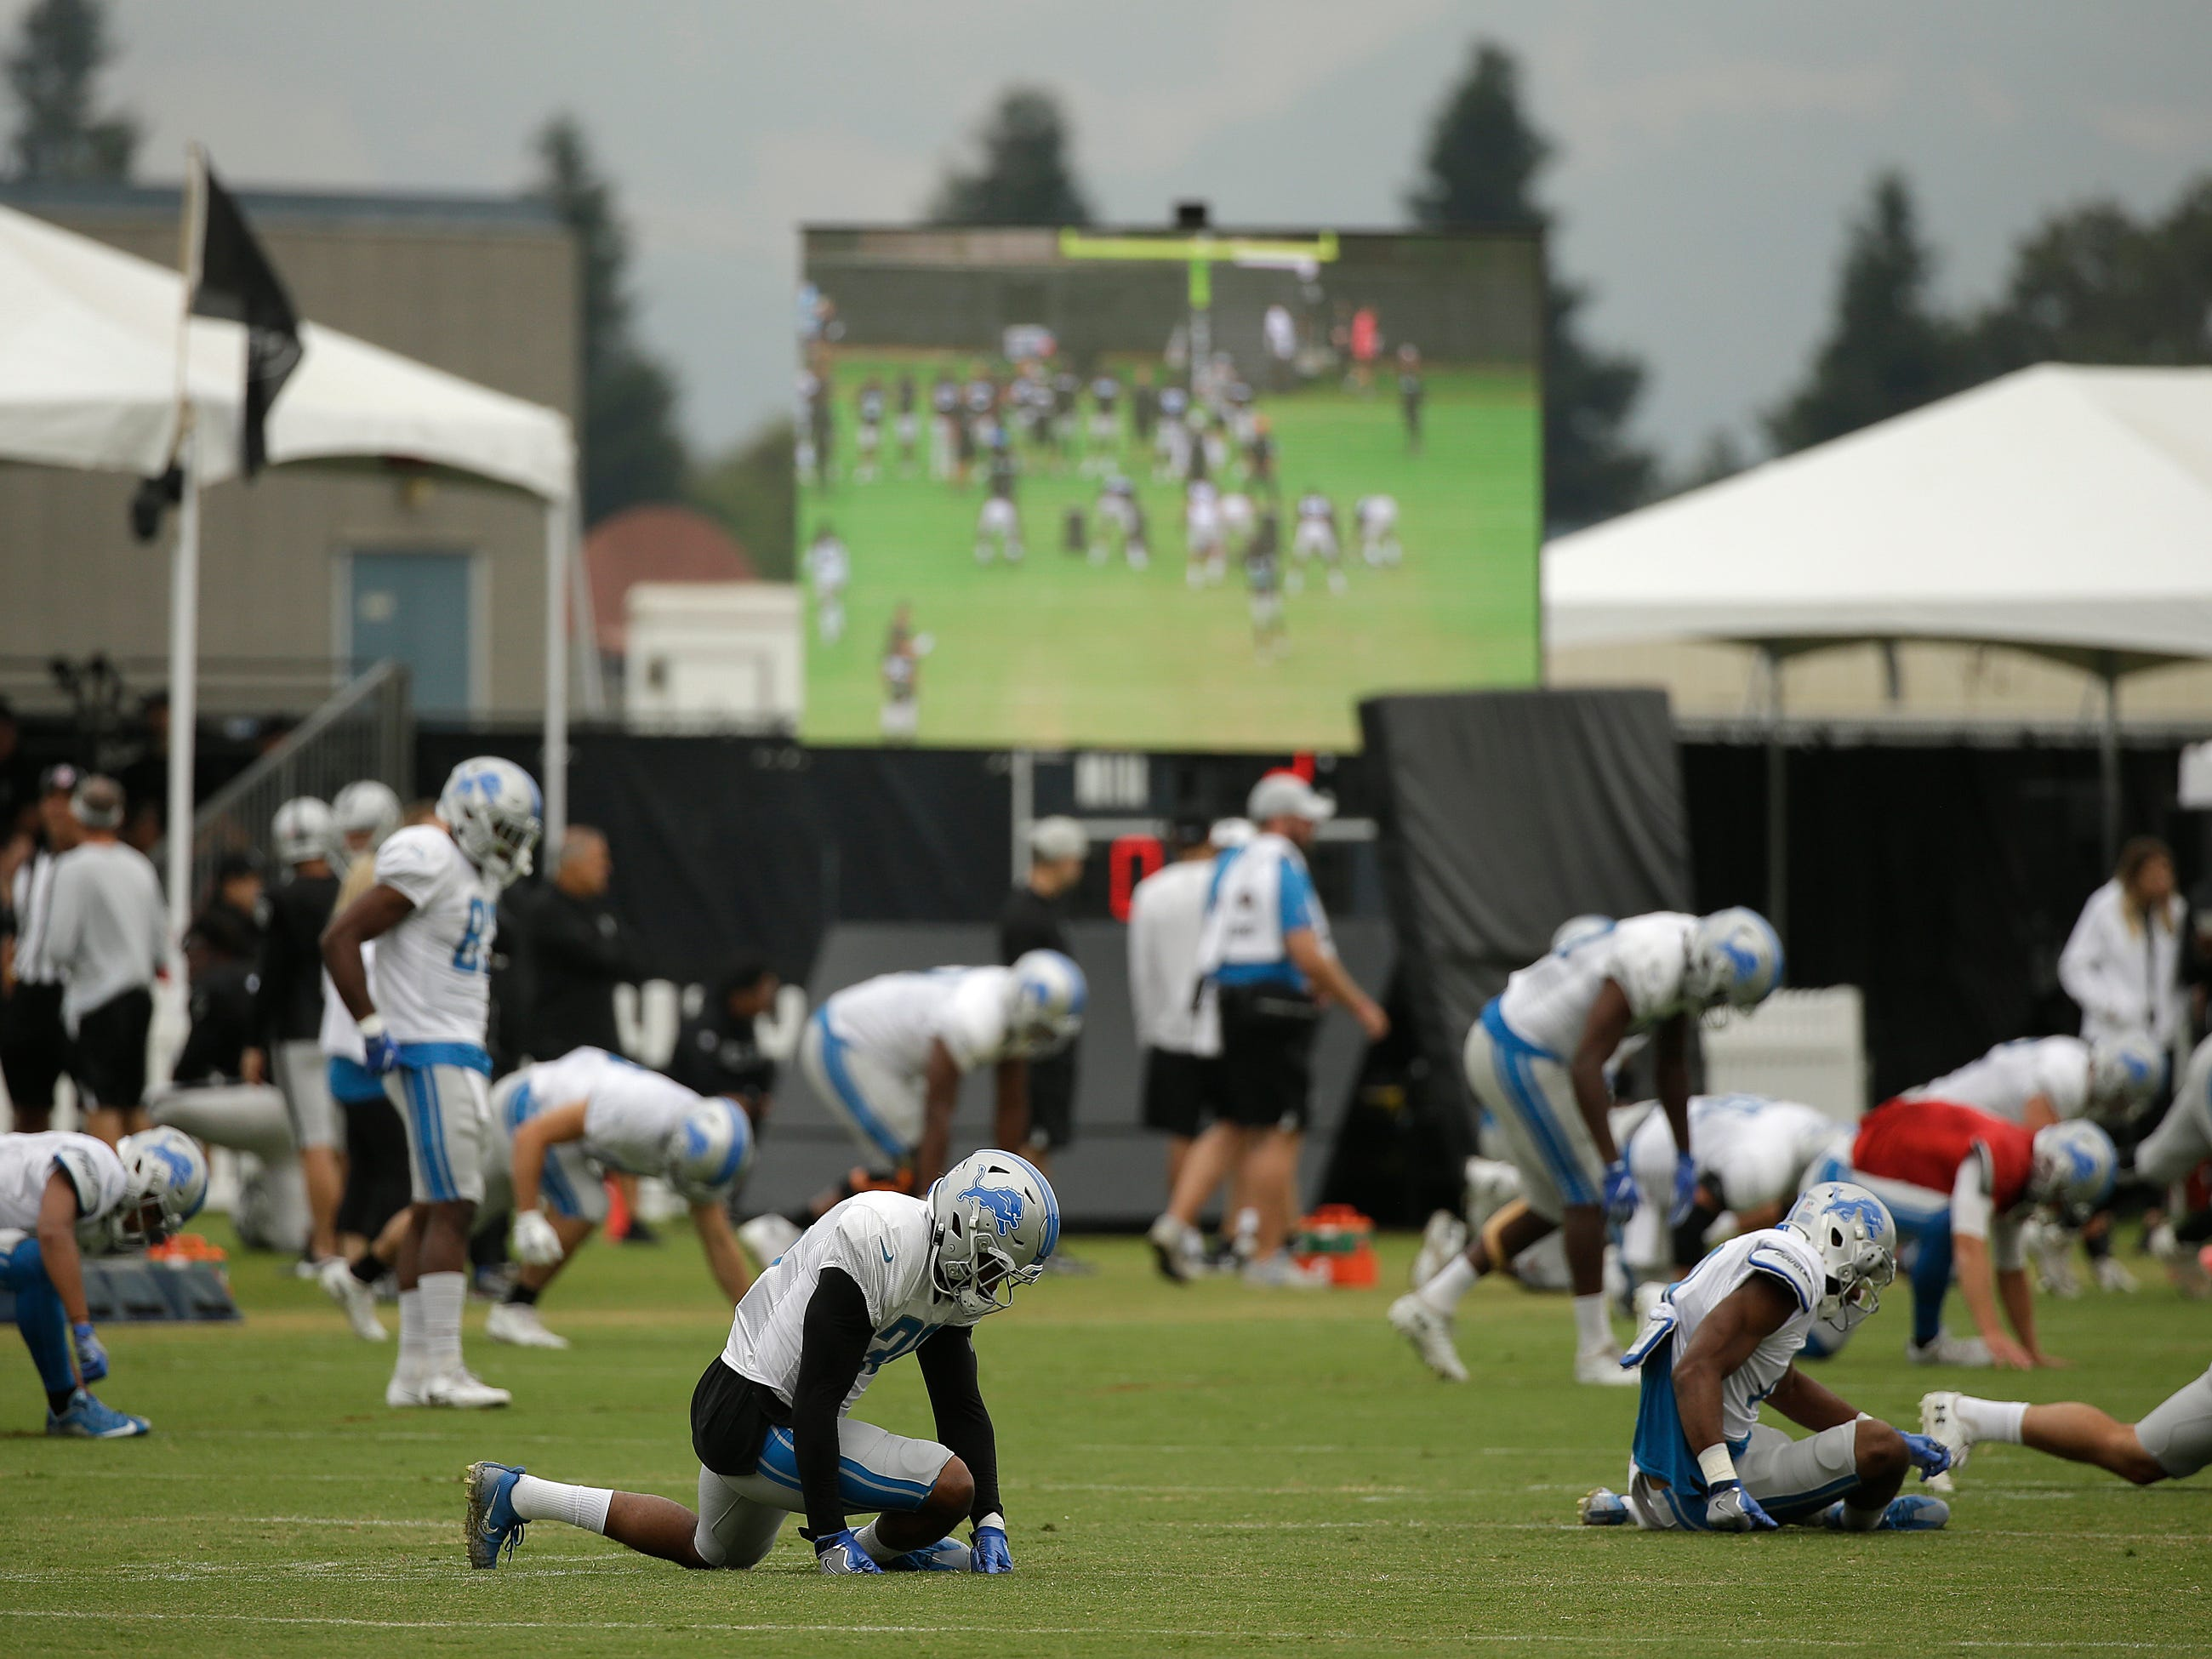 The Detroit Lions stretch at the start of practice.